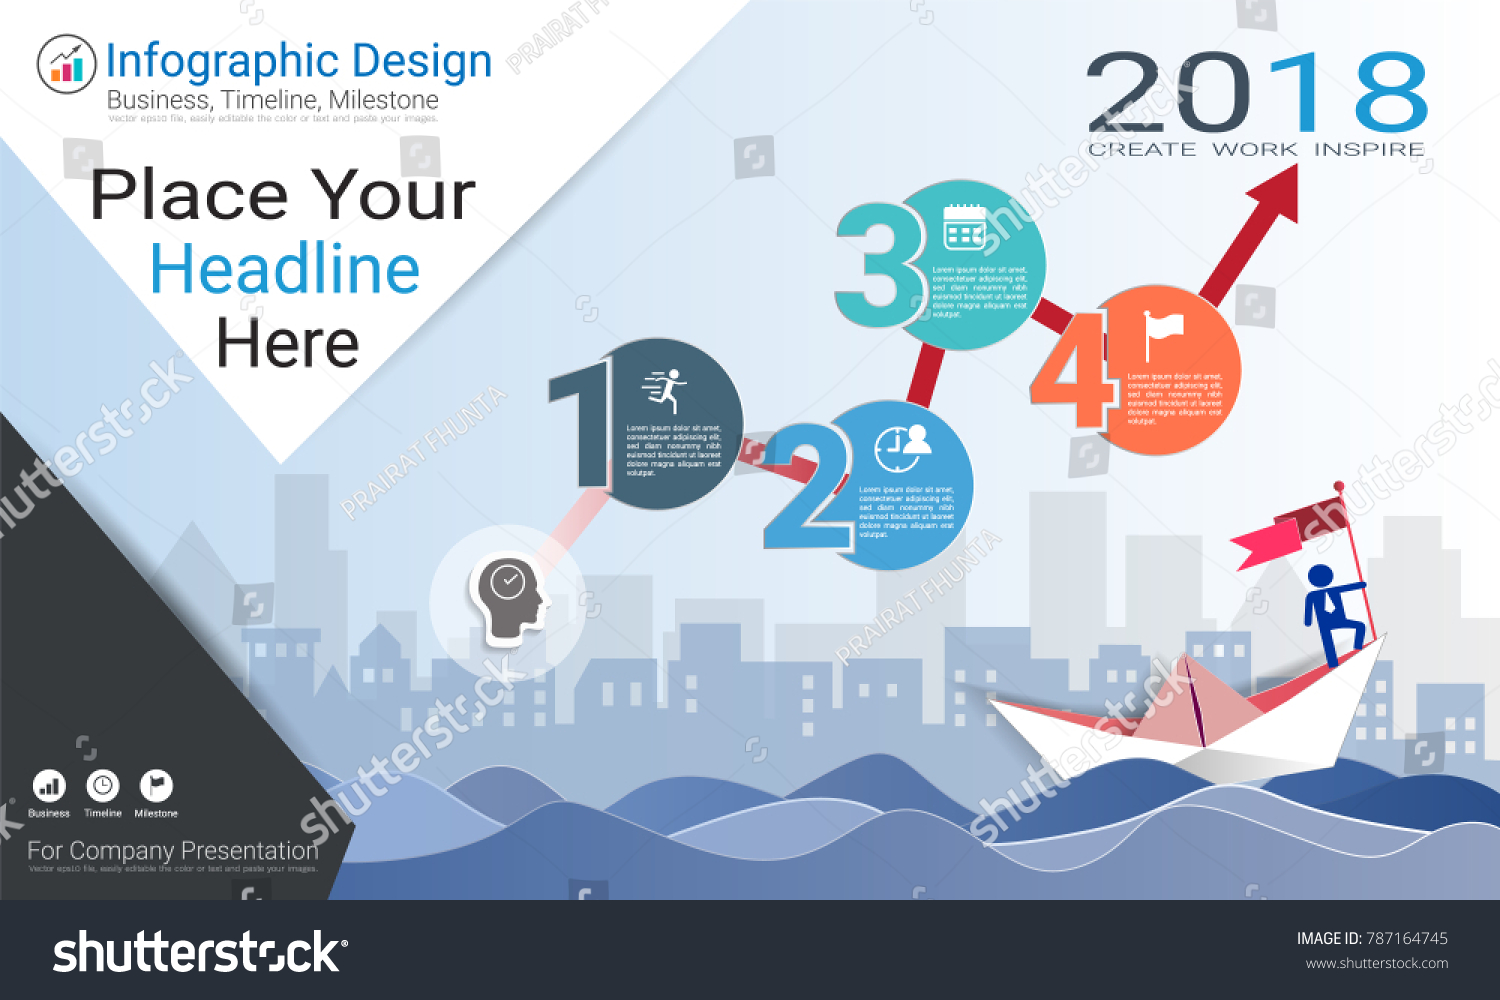 Rd process flow chart images free any chart examples rd process flow chart choice image free any chart examples business infographics template milestone timeline road nvjuhfo Image collections